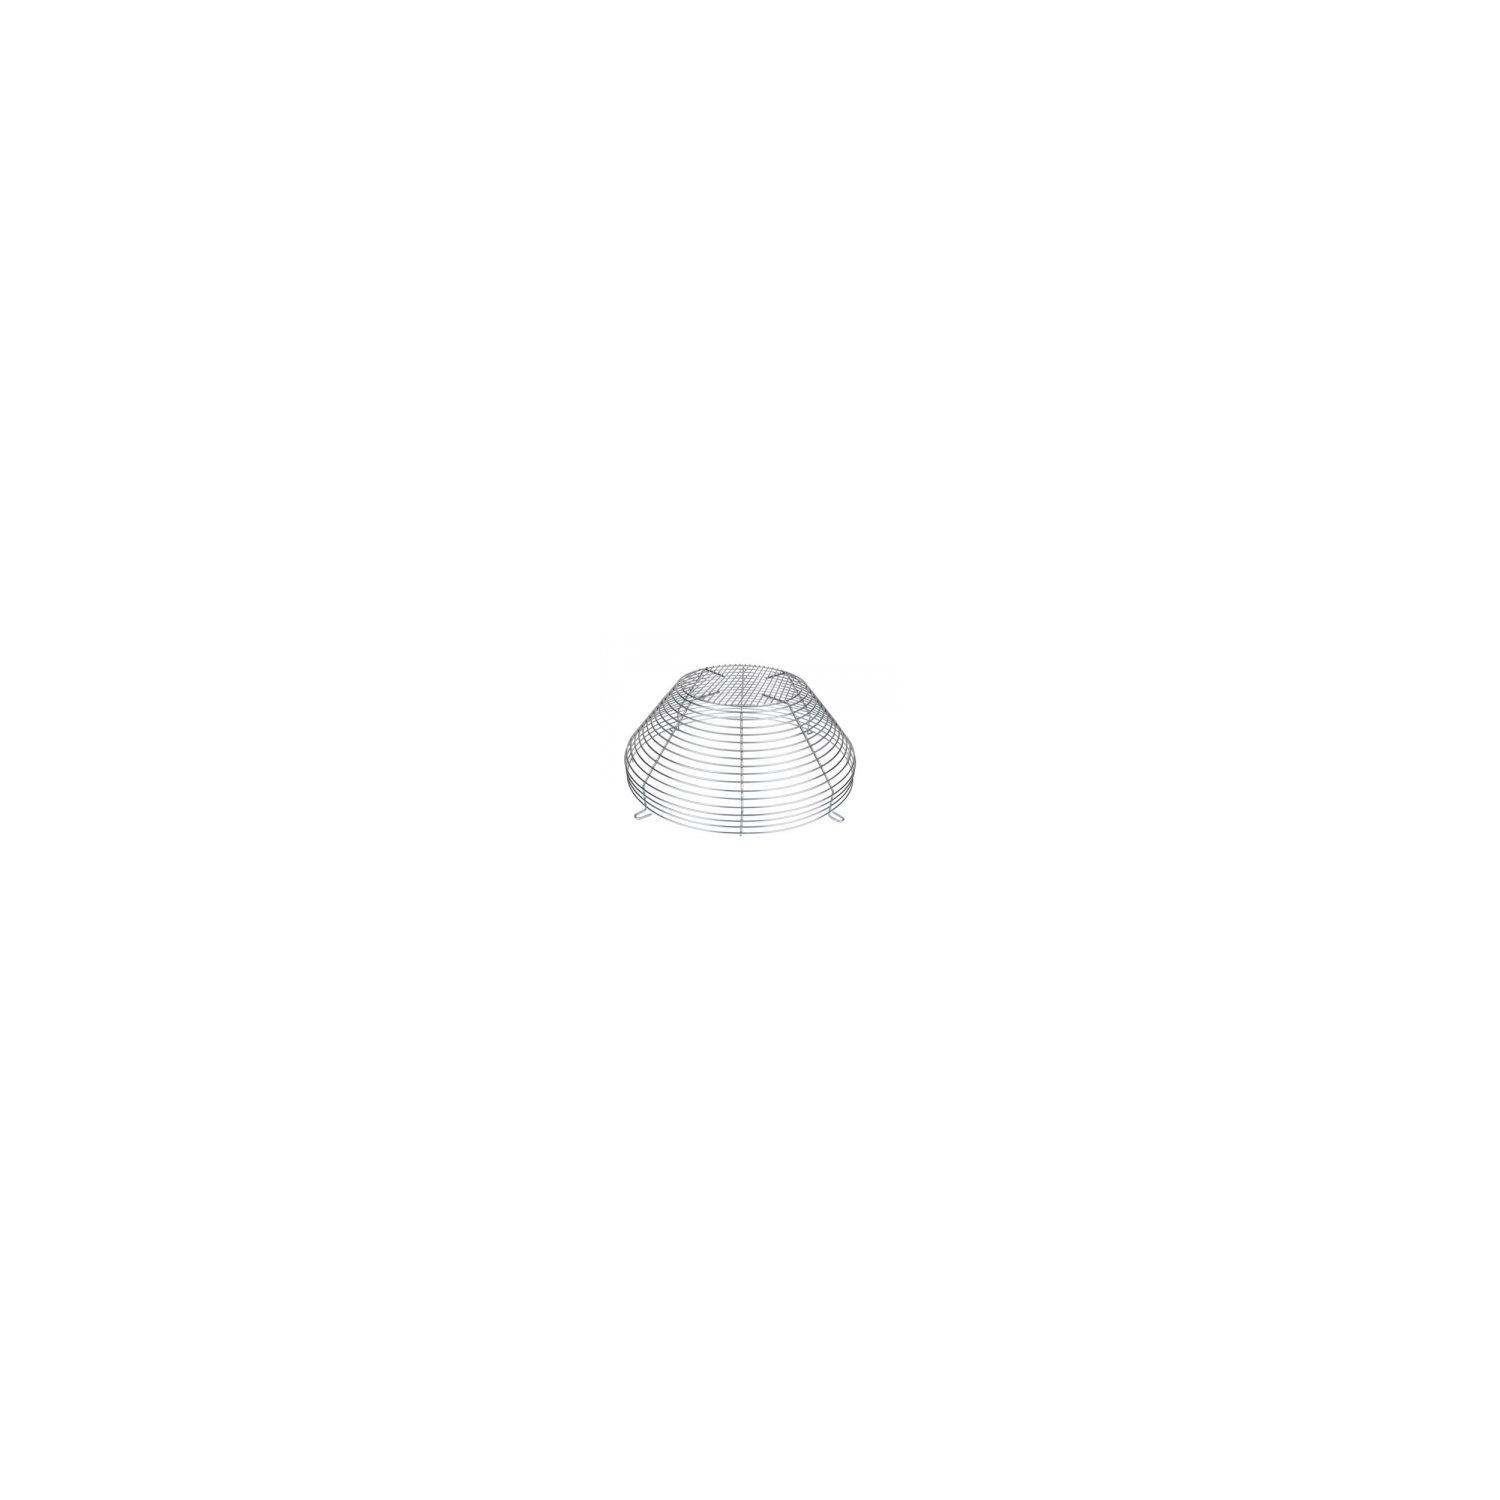 Grille de protection aspiration RP1 Ø1801